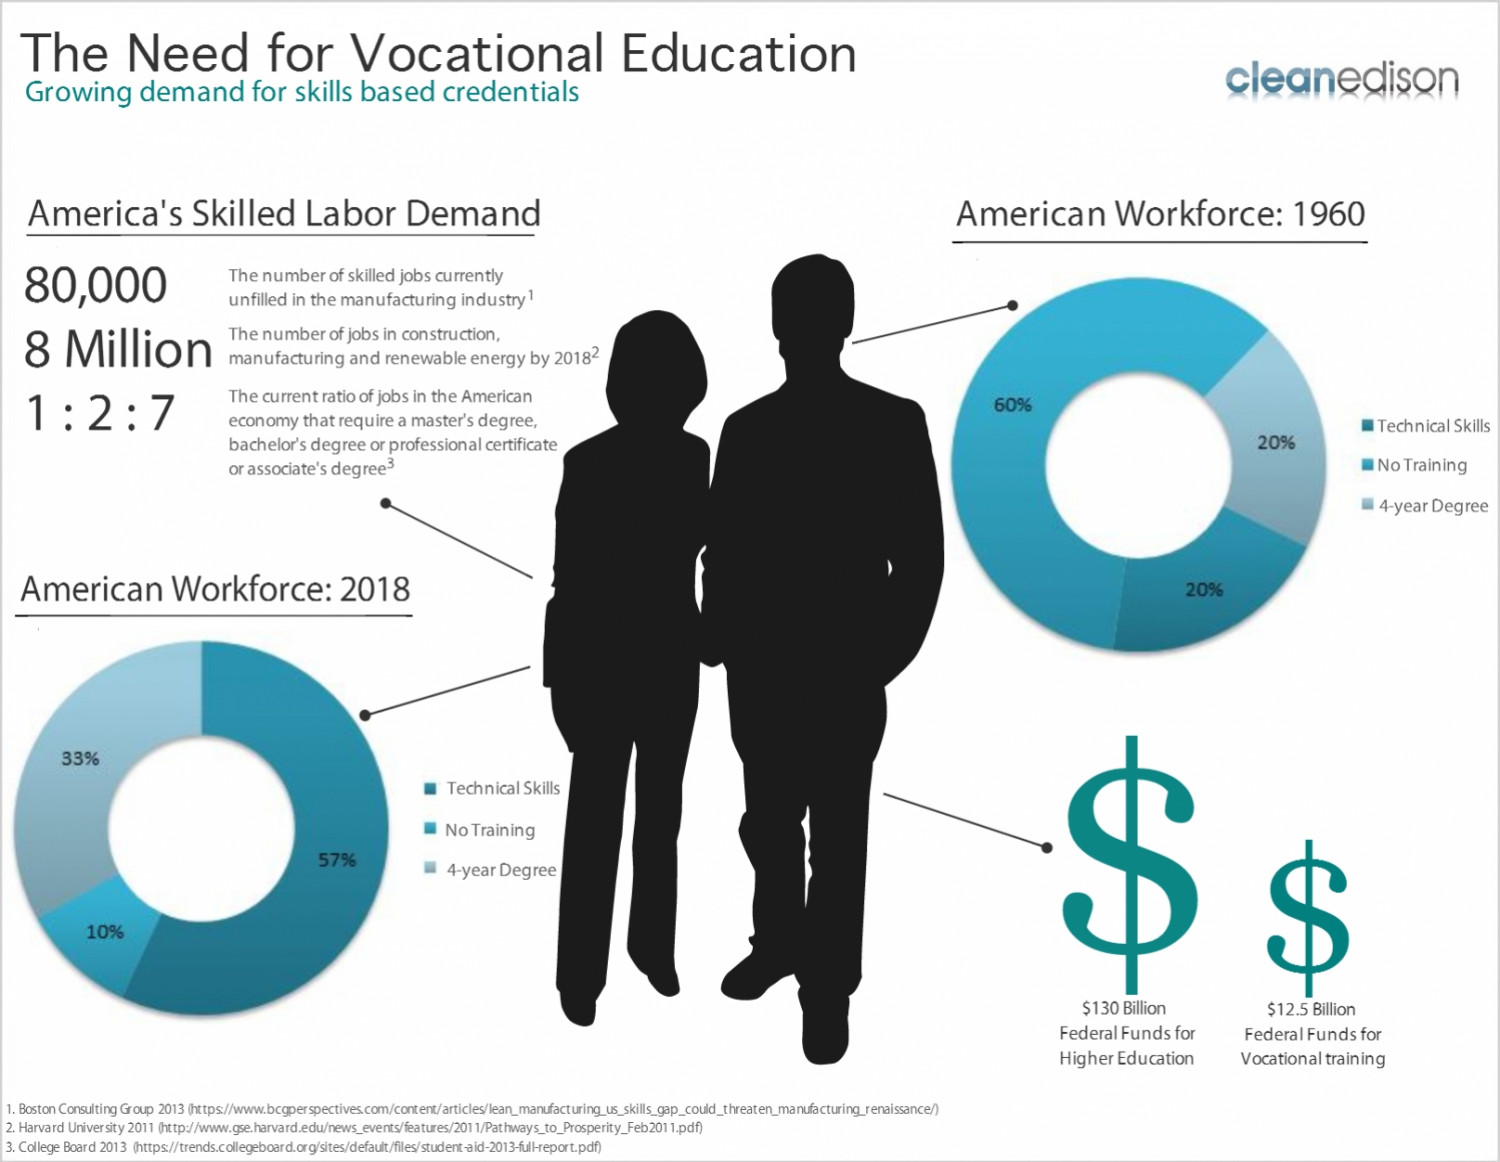 The Need for Vocational Education | Visual.ly